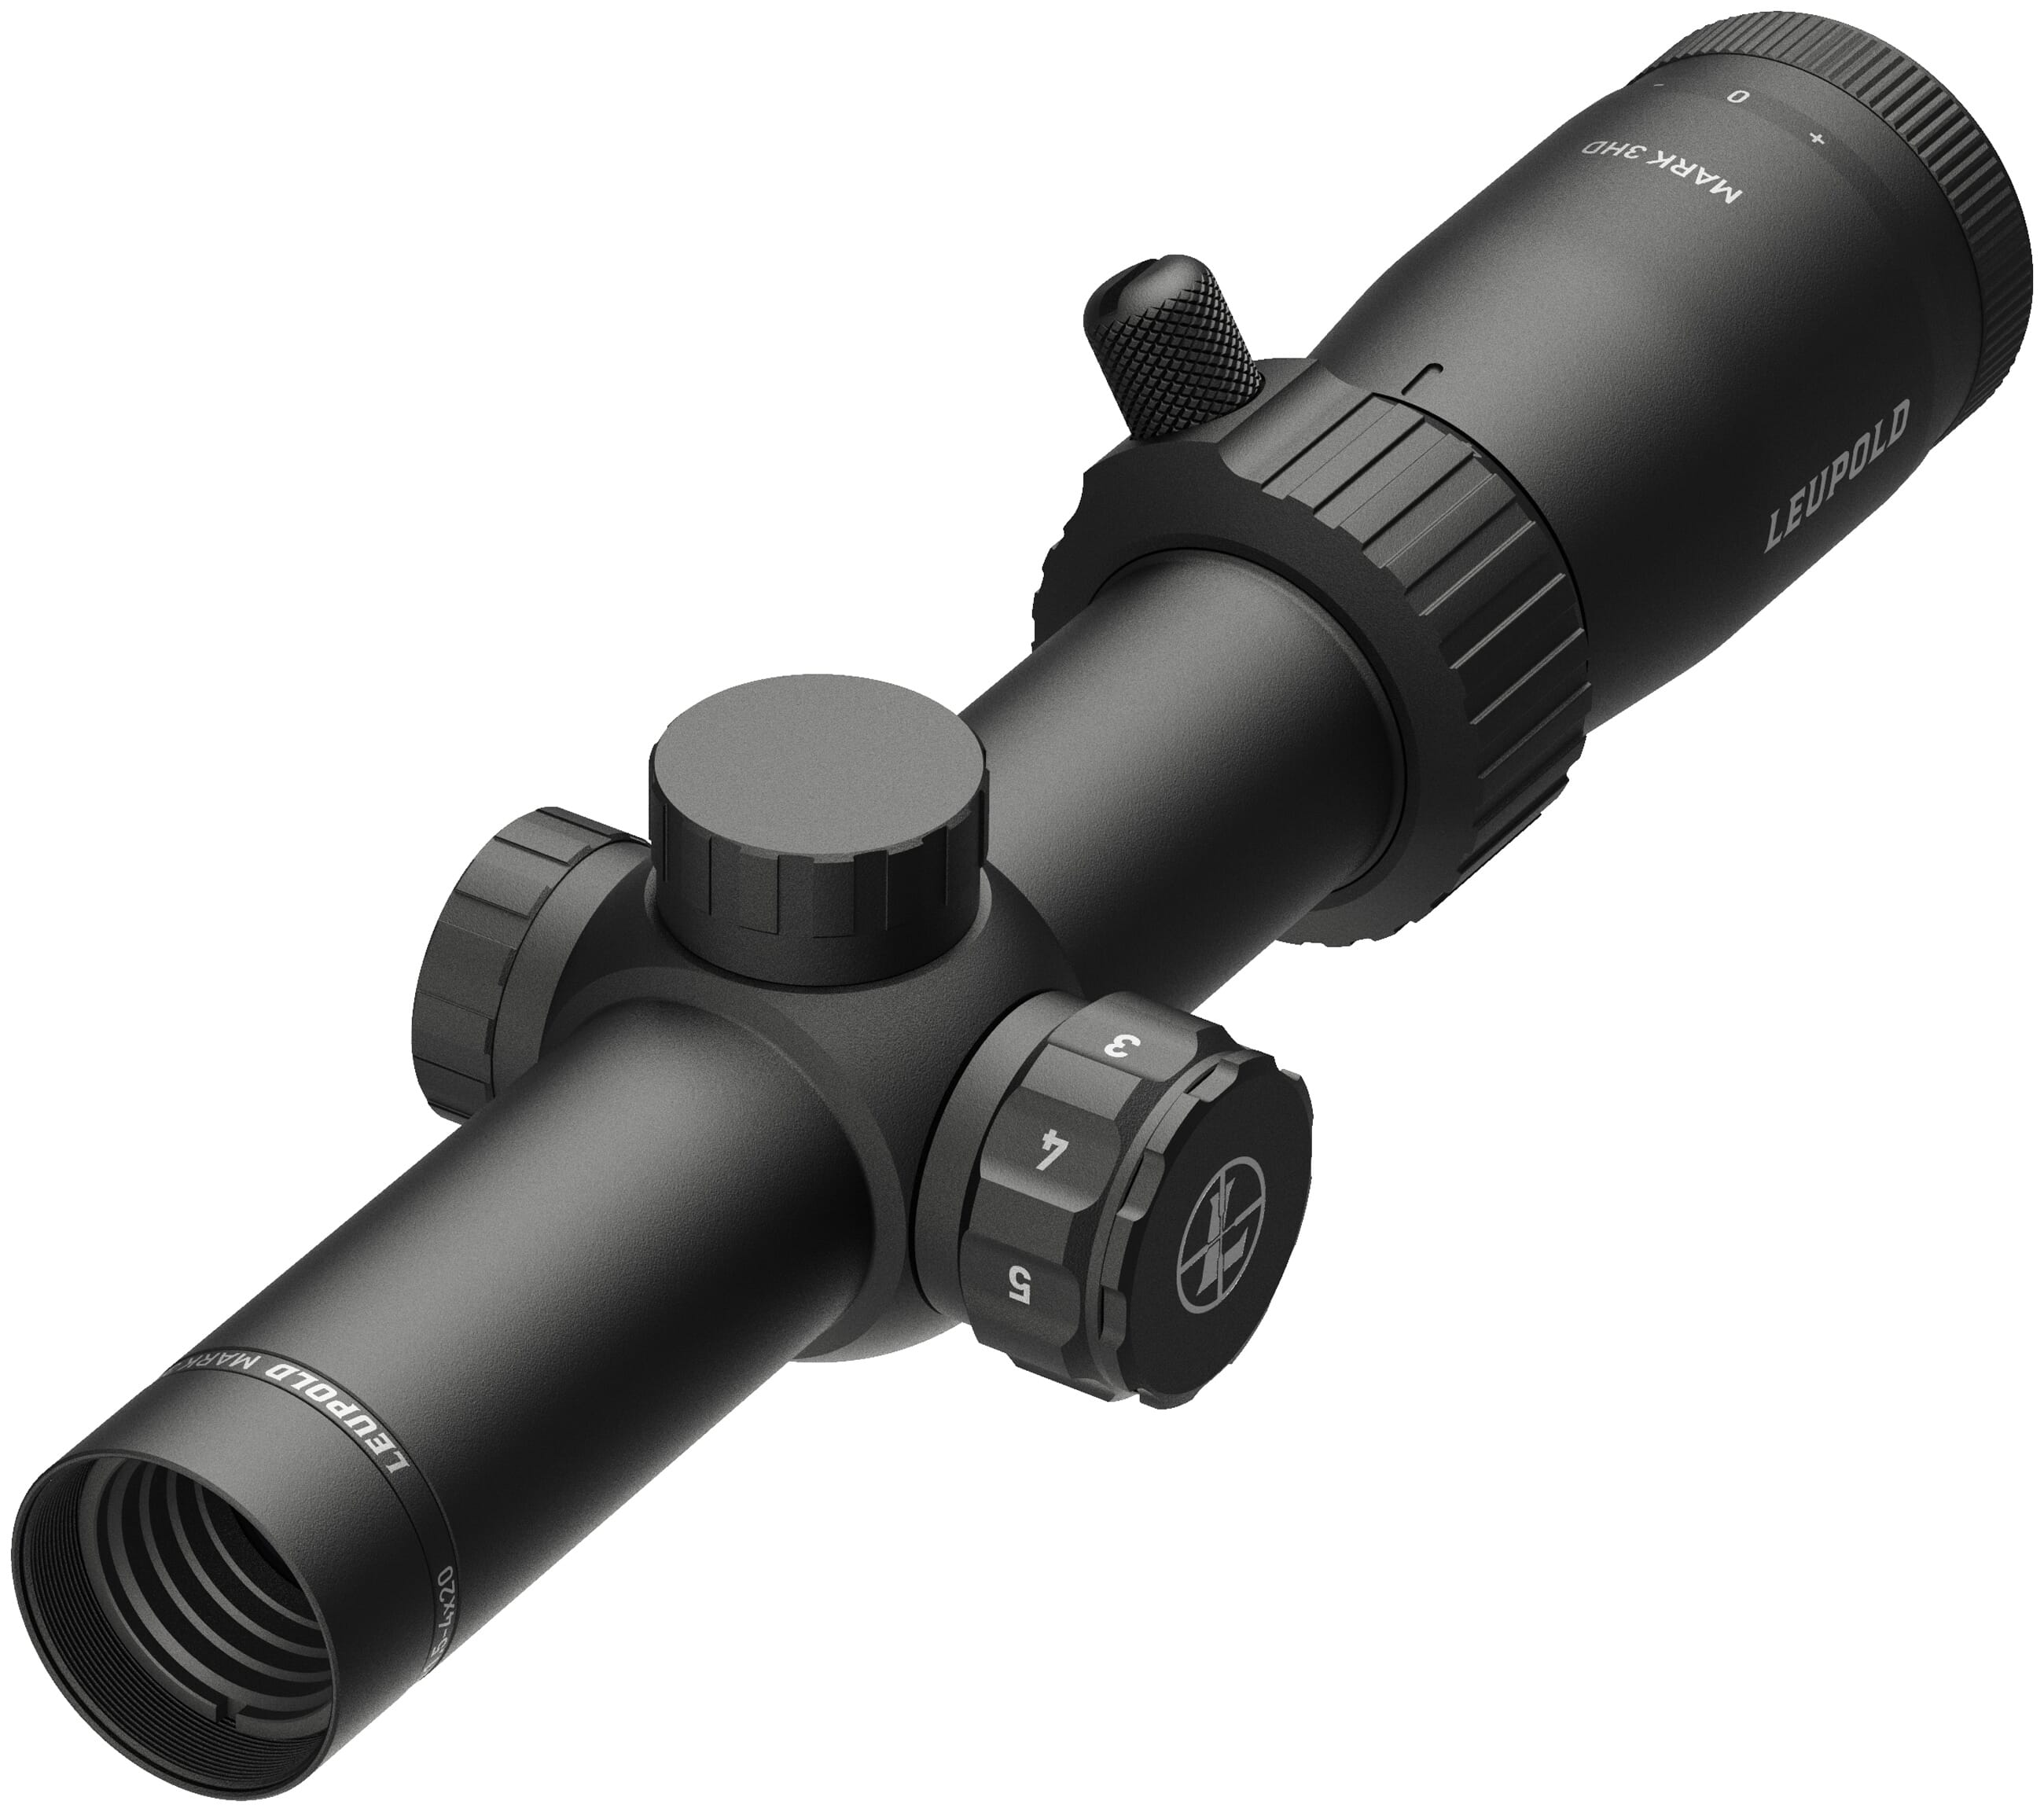 Leupold Mark 3HD 1.5-4x20 (30mm) Illum. FireDot BDC Riflescope 180663